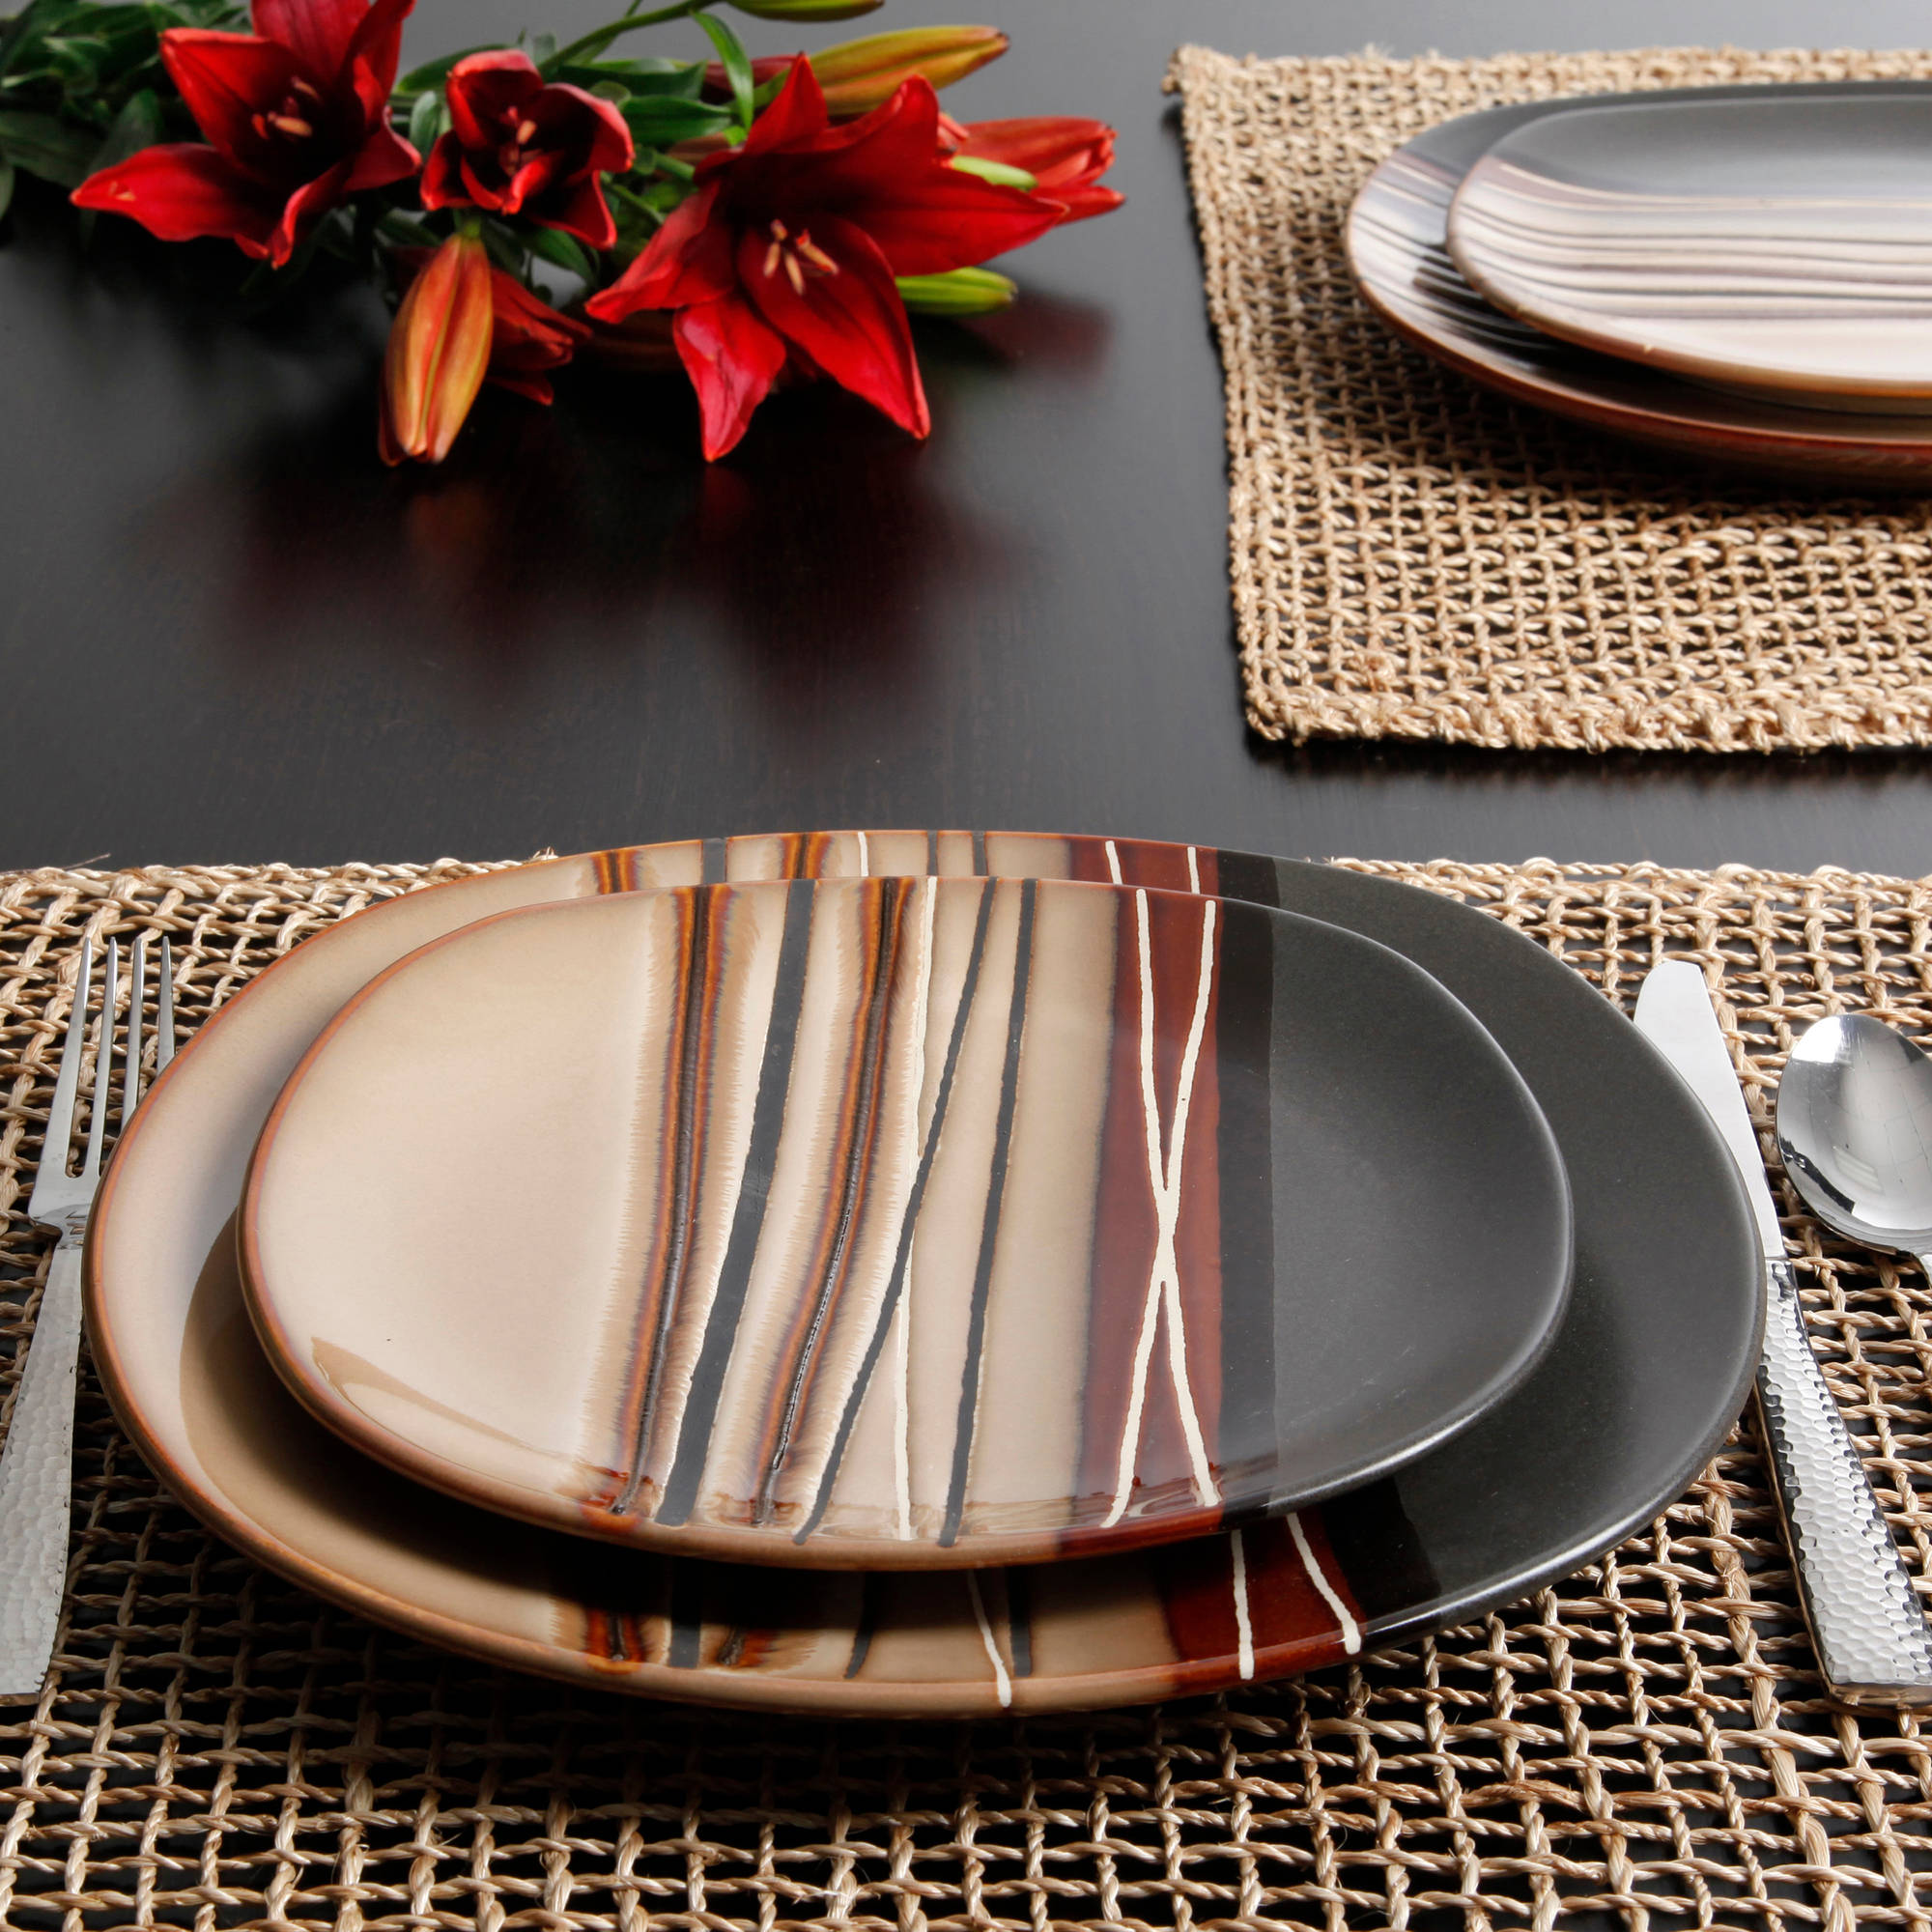 Stoneware Dinnerware Sets | 40 Piece Dinnerware Set | Mikasa Dinnerware Sets & Dining Room: Fascinating Stoneware Dinnerware Sets For Dining Room ...